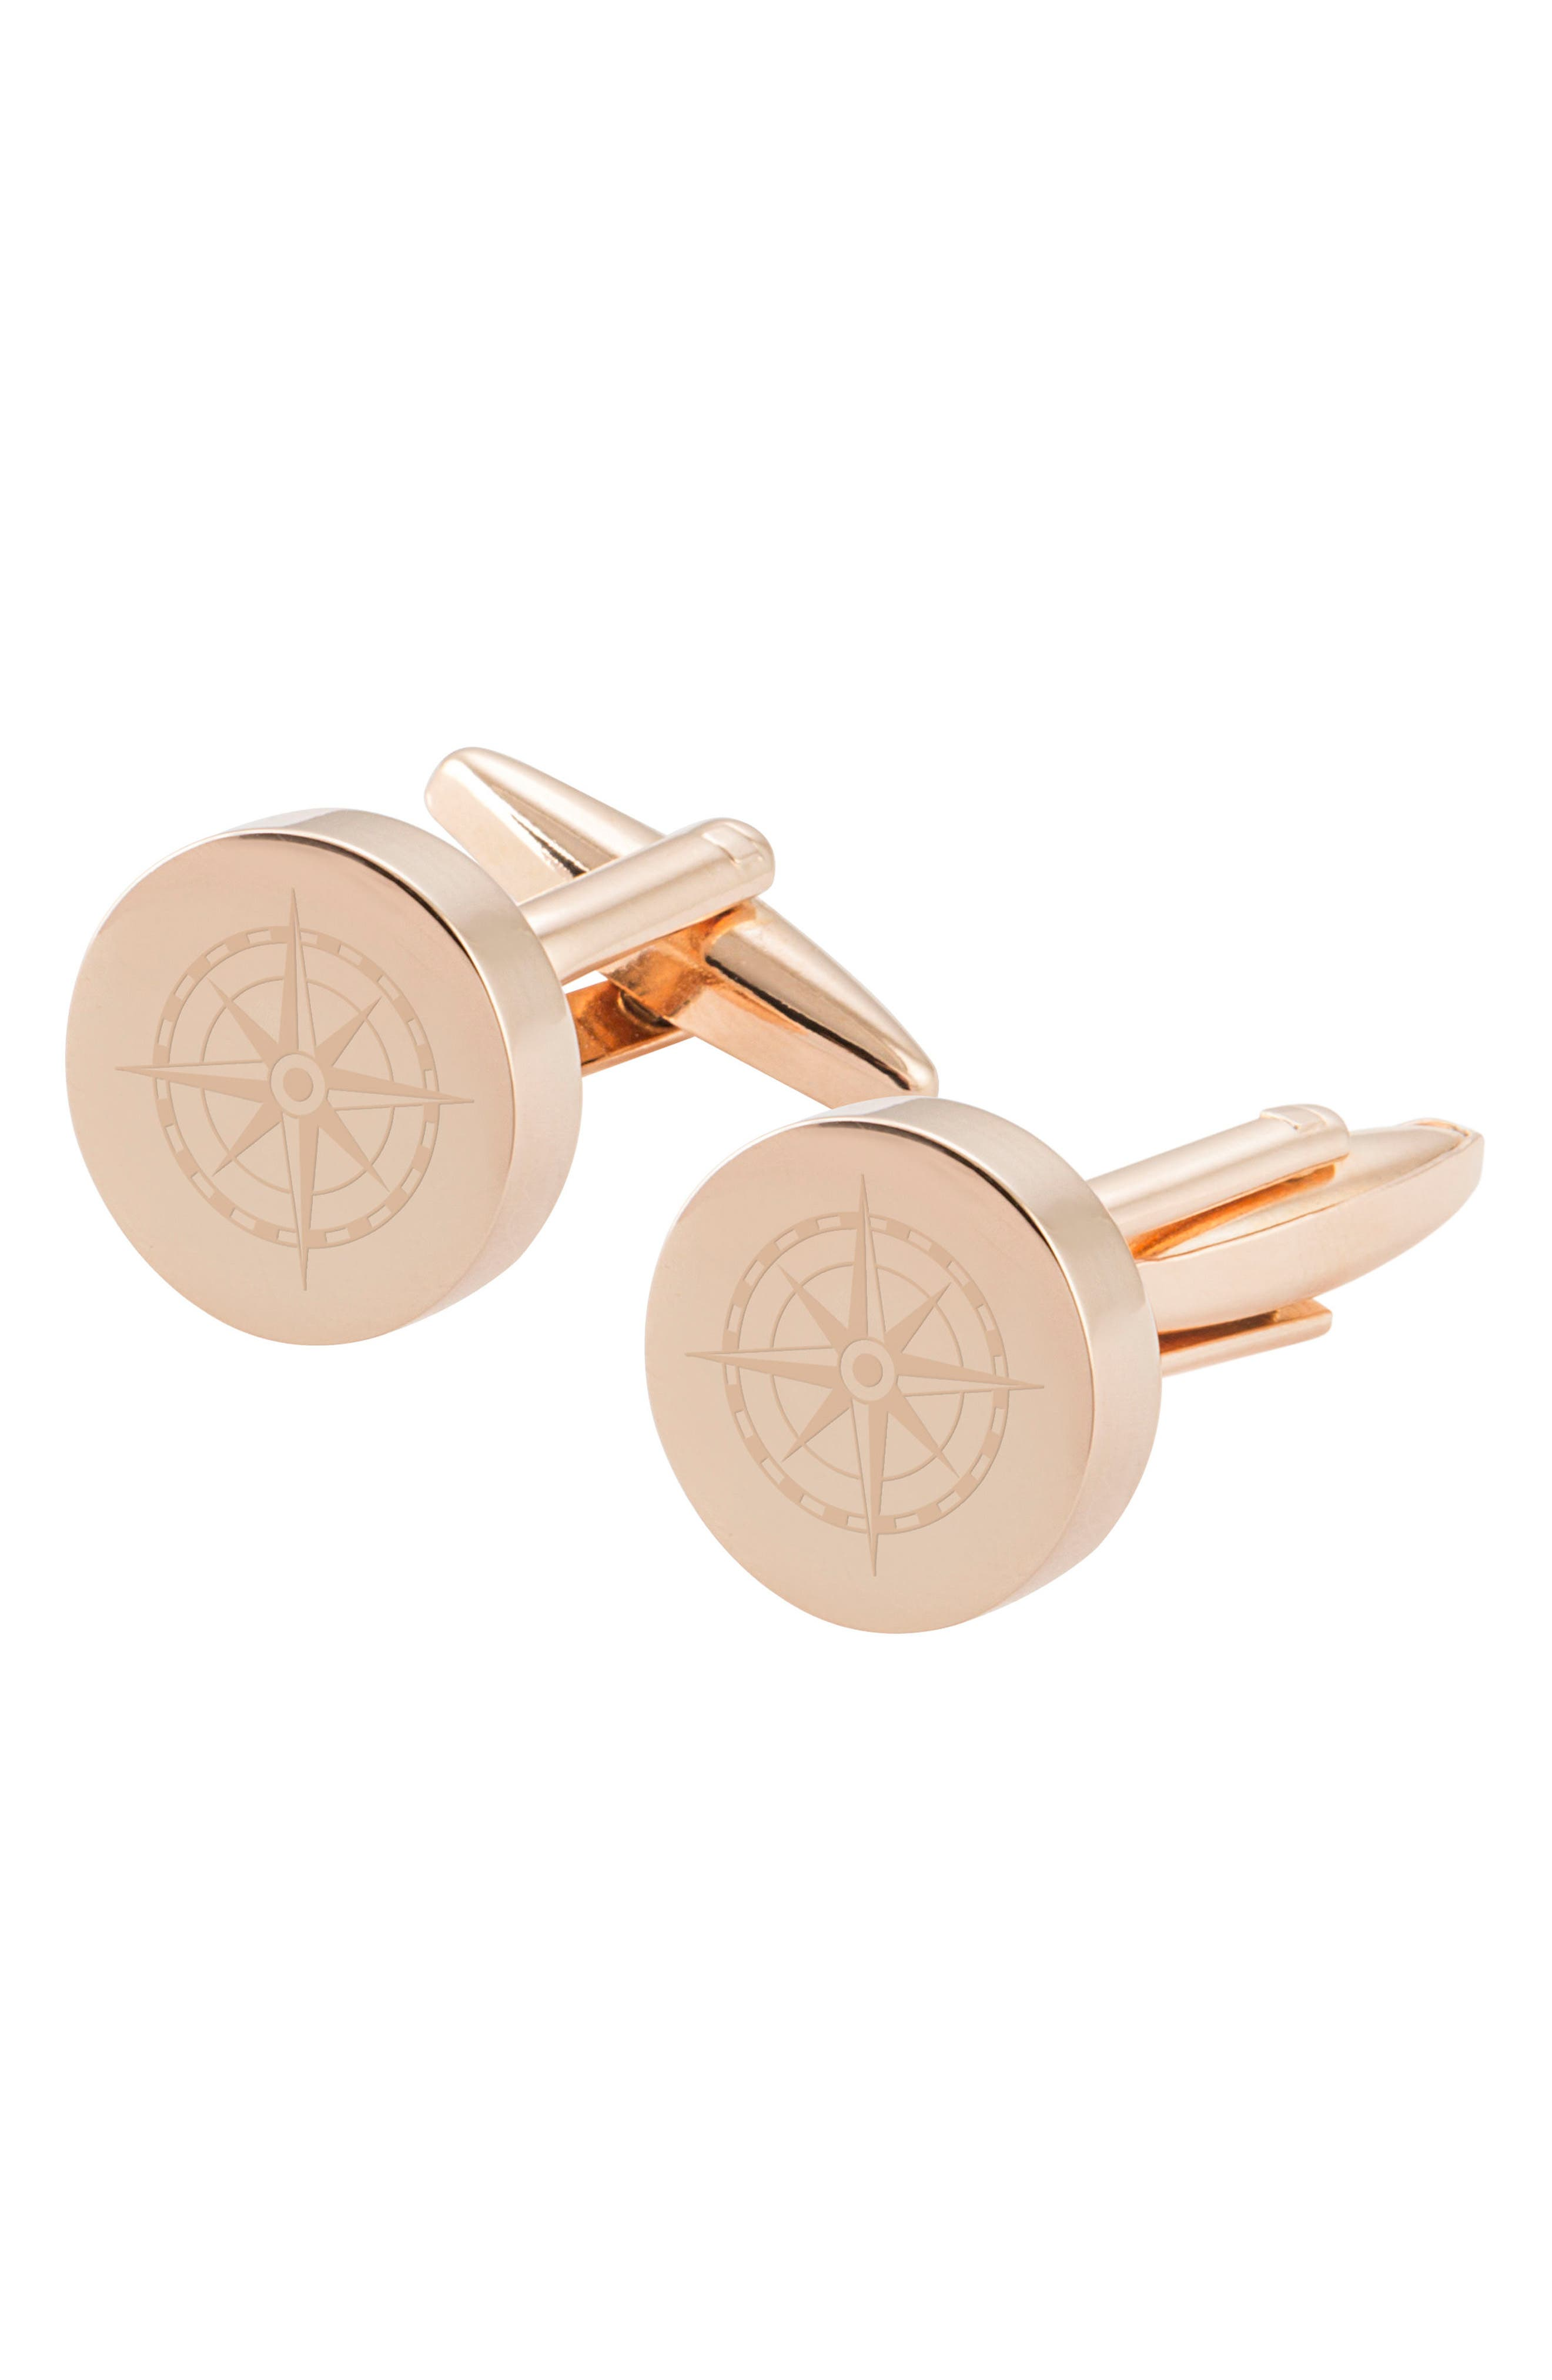 Compass Cuff Links,                             Main thumbnail 1, color,                             ROSE GOLD